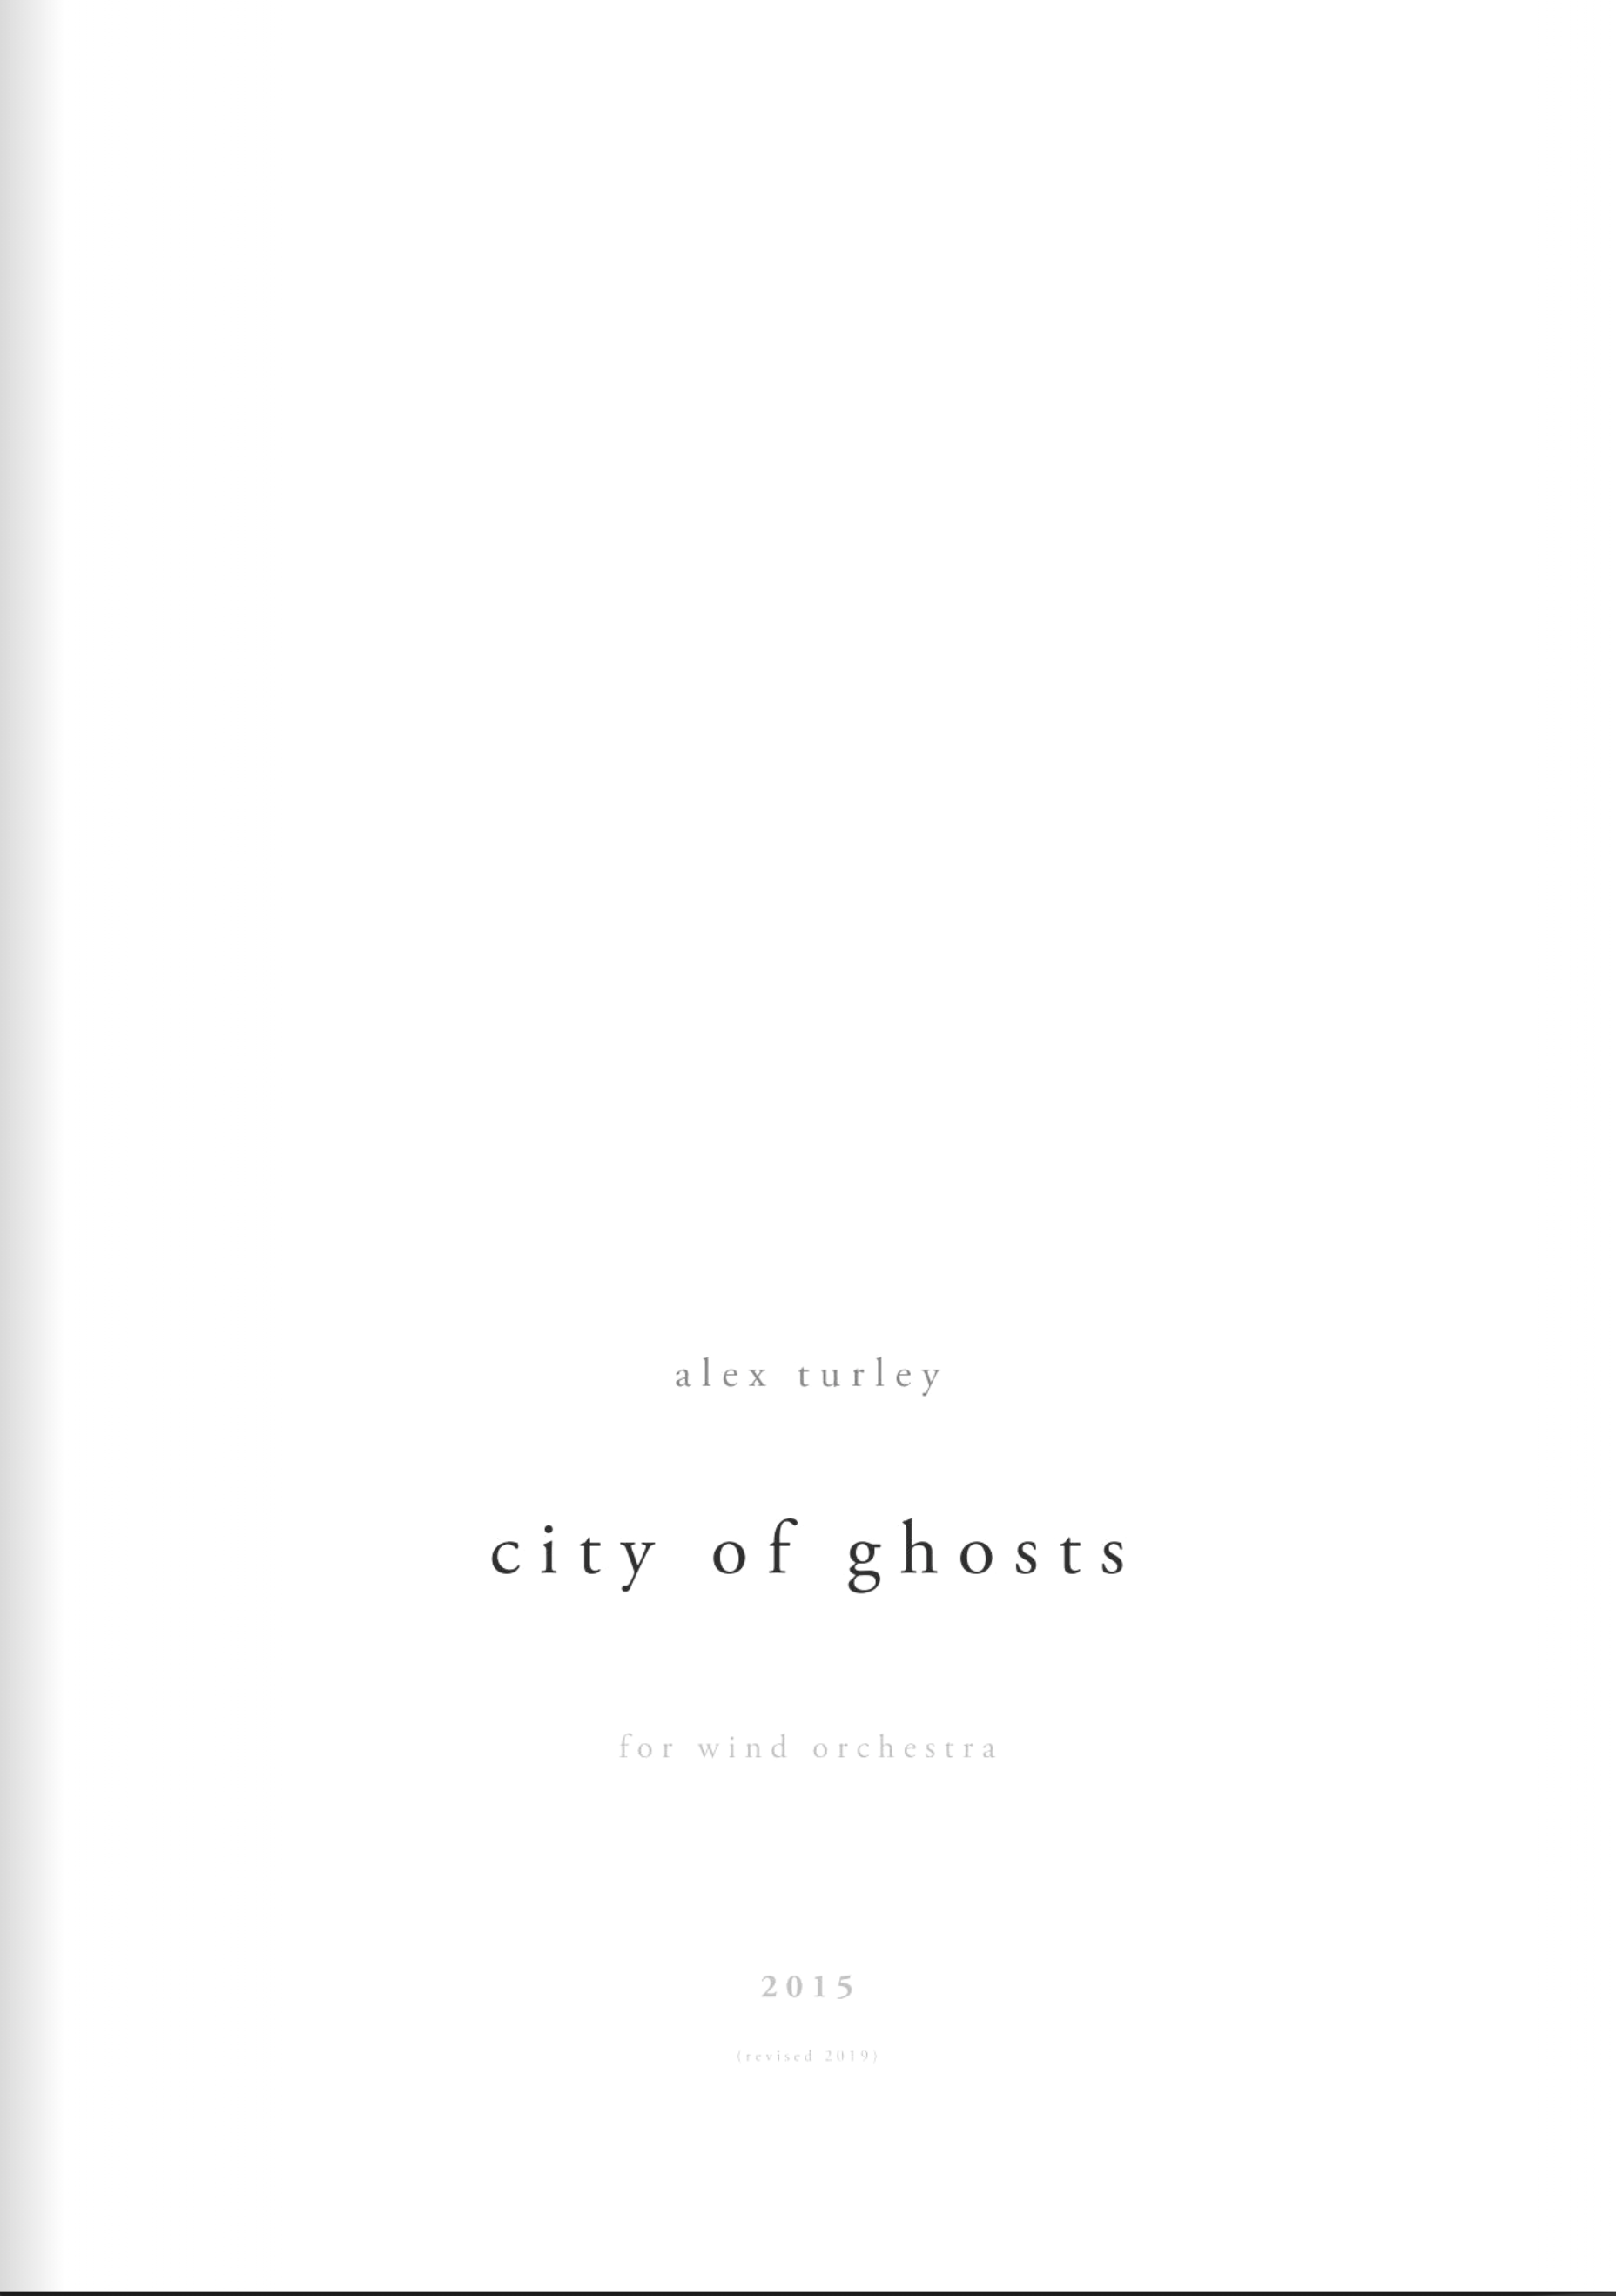 City Of Ghosts by Alex Turley